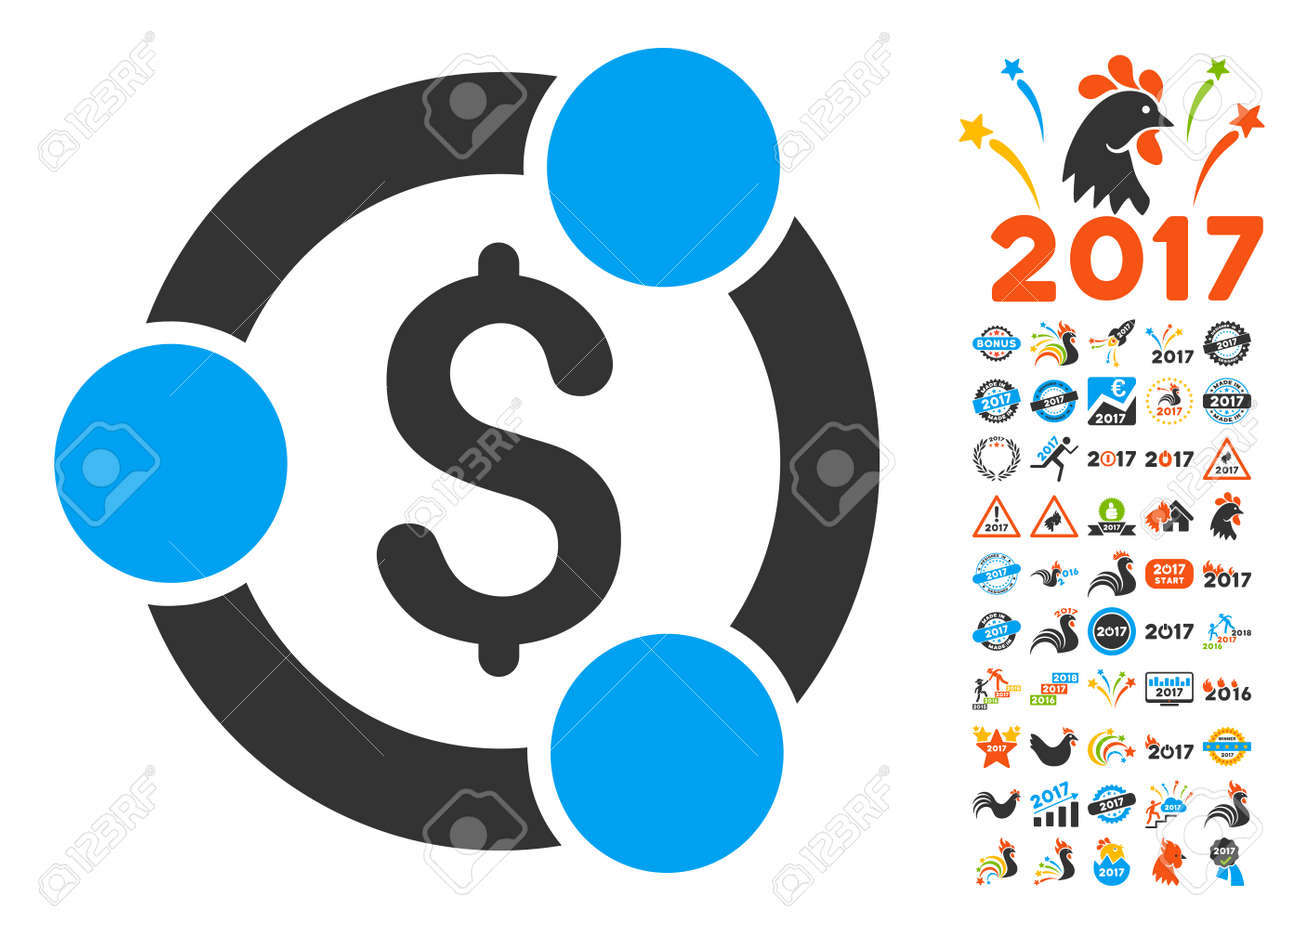 financial collaboration icon with bonus 2017 new year clip art vector illustration style is flat